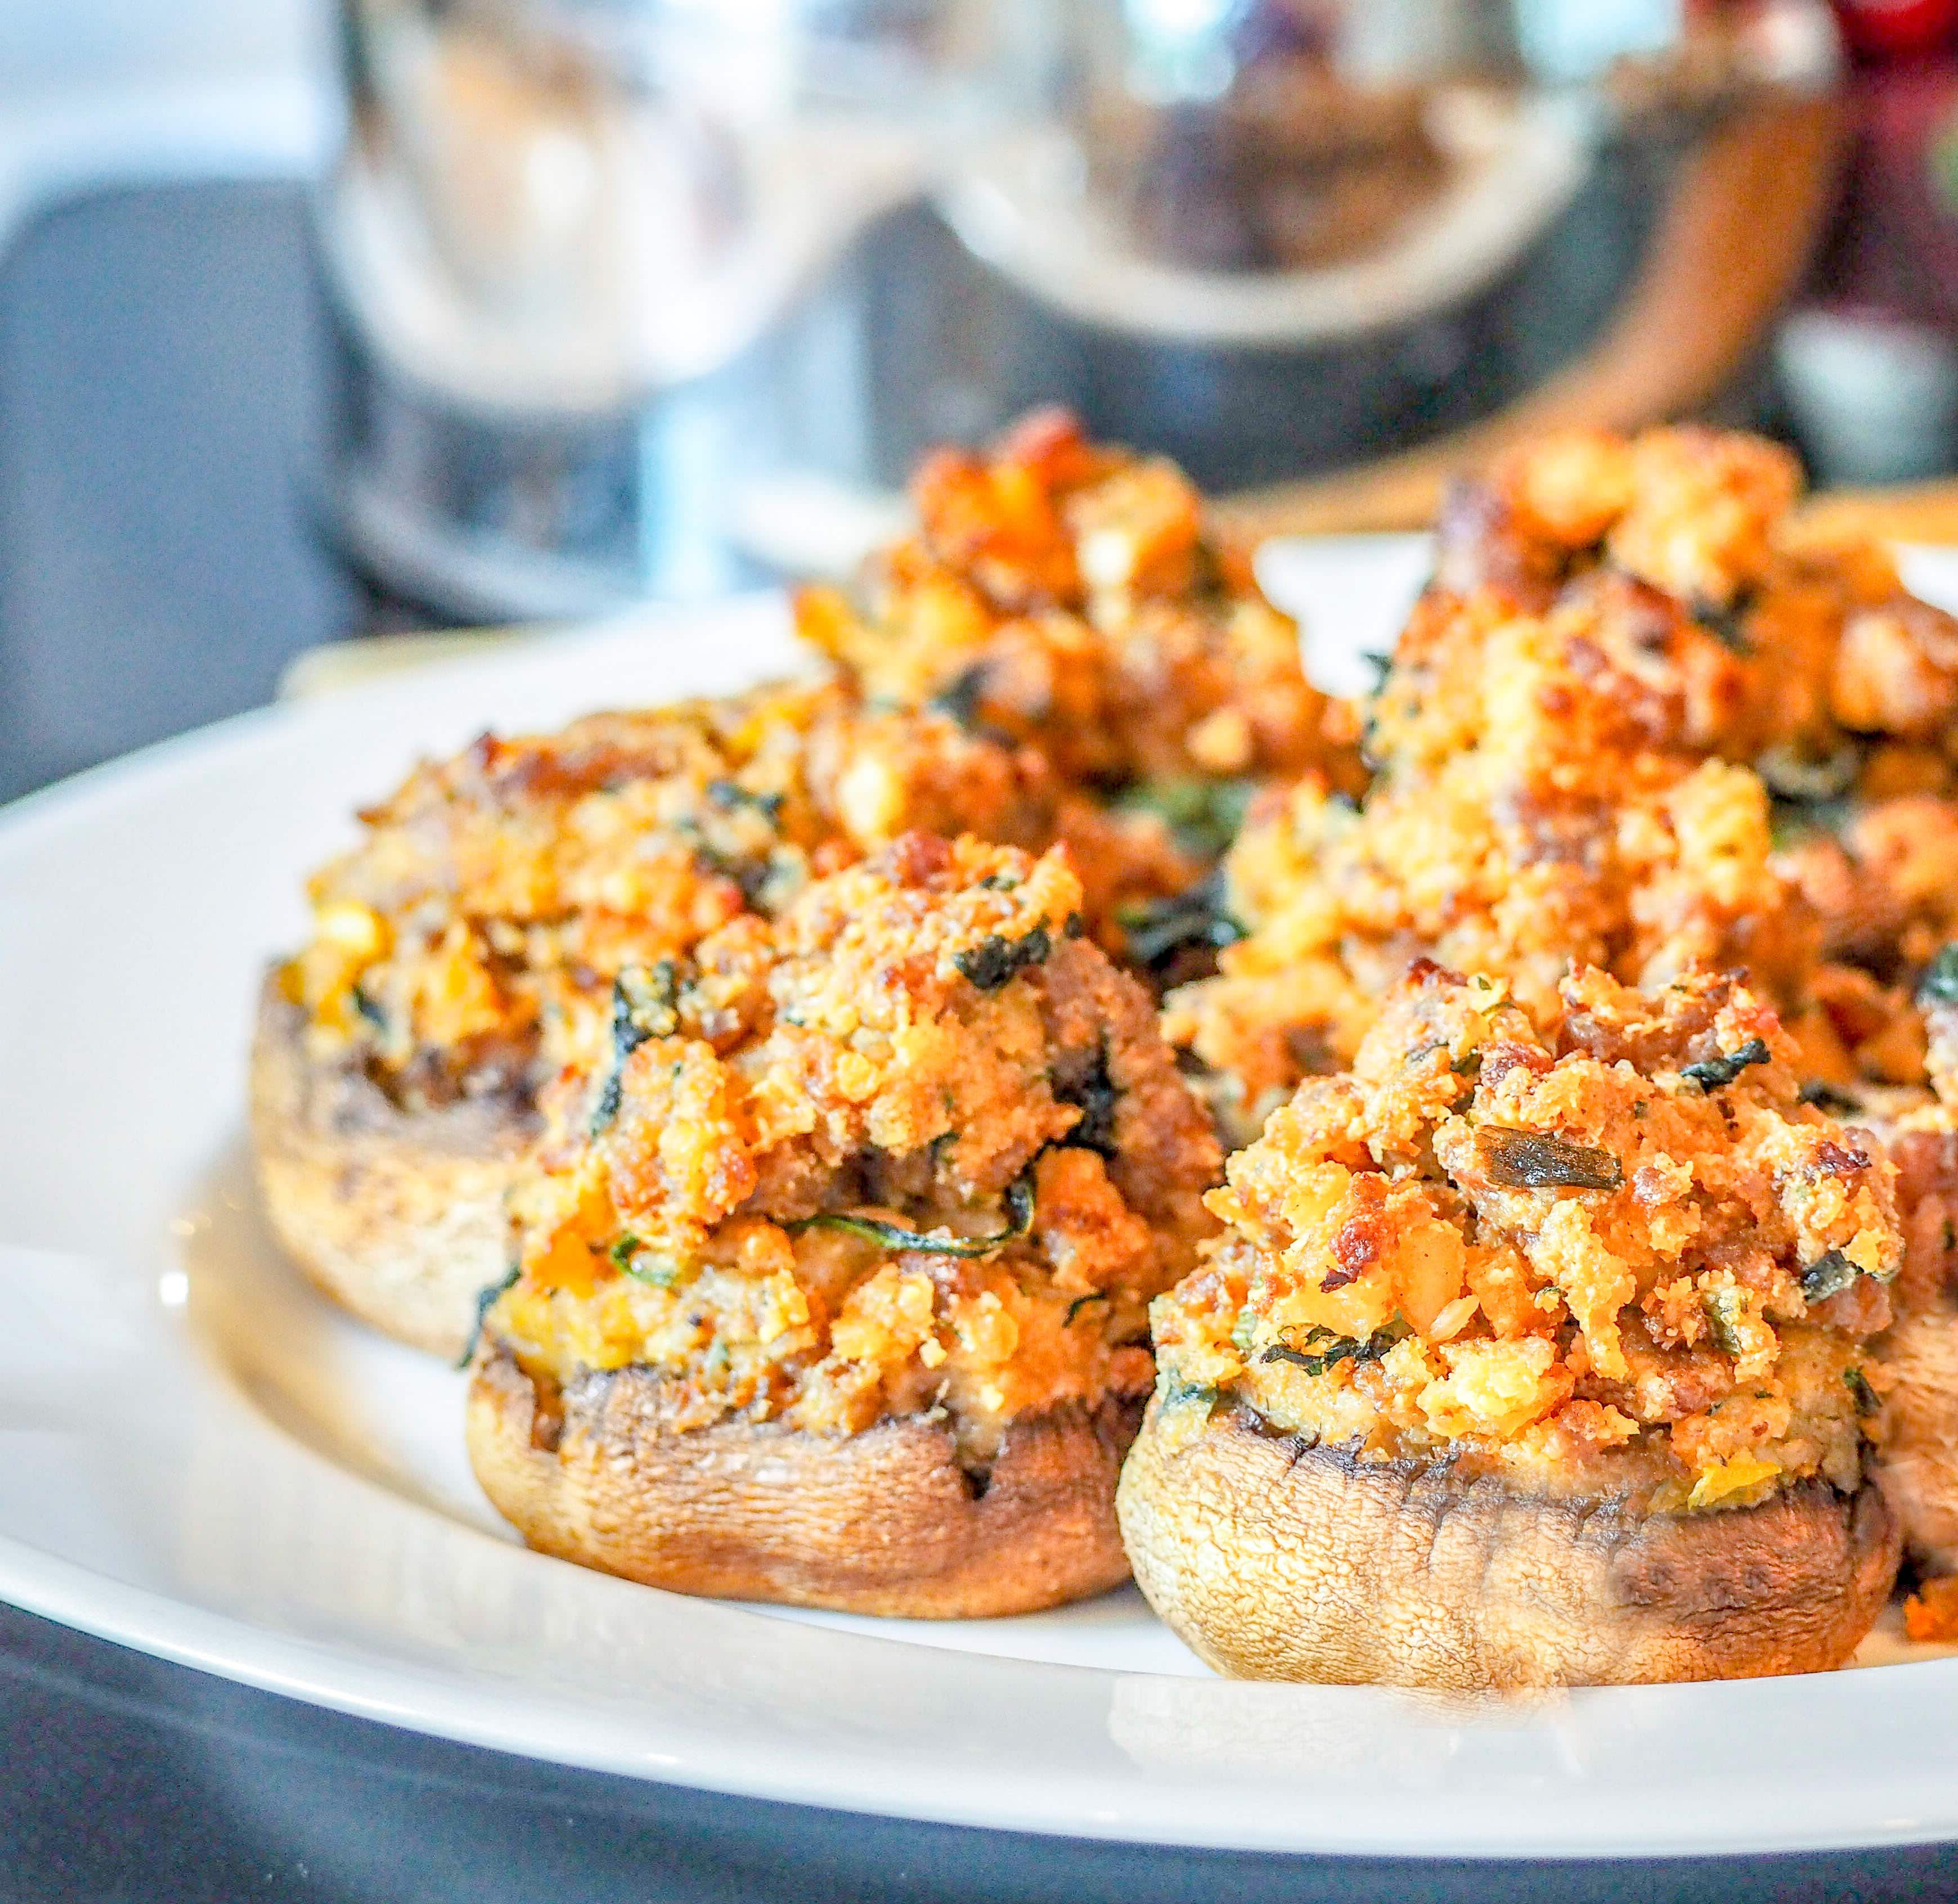 italian sausage stuffed mushrooms on a white plate sitting on a stove with a teapot in the background